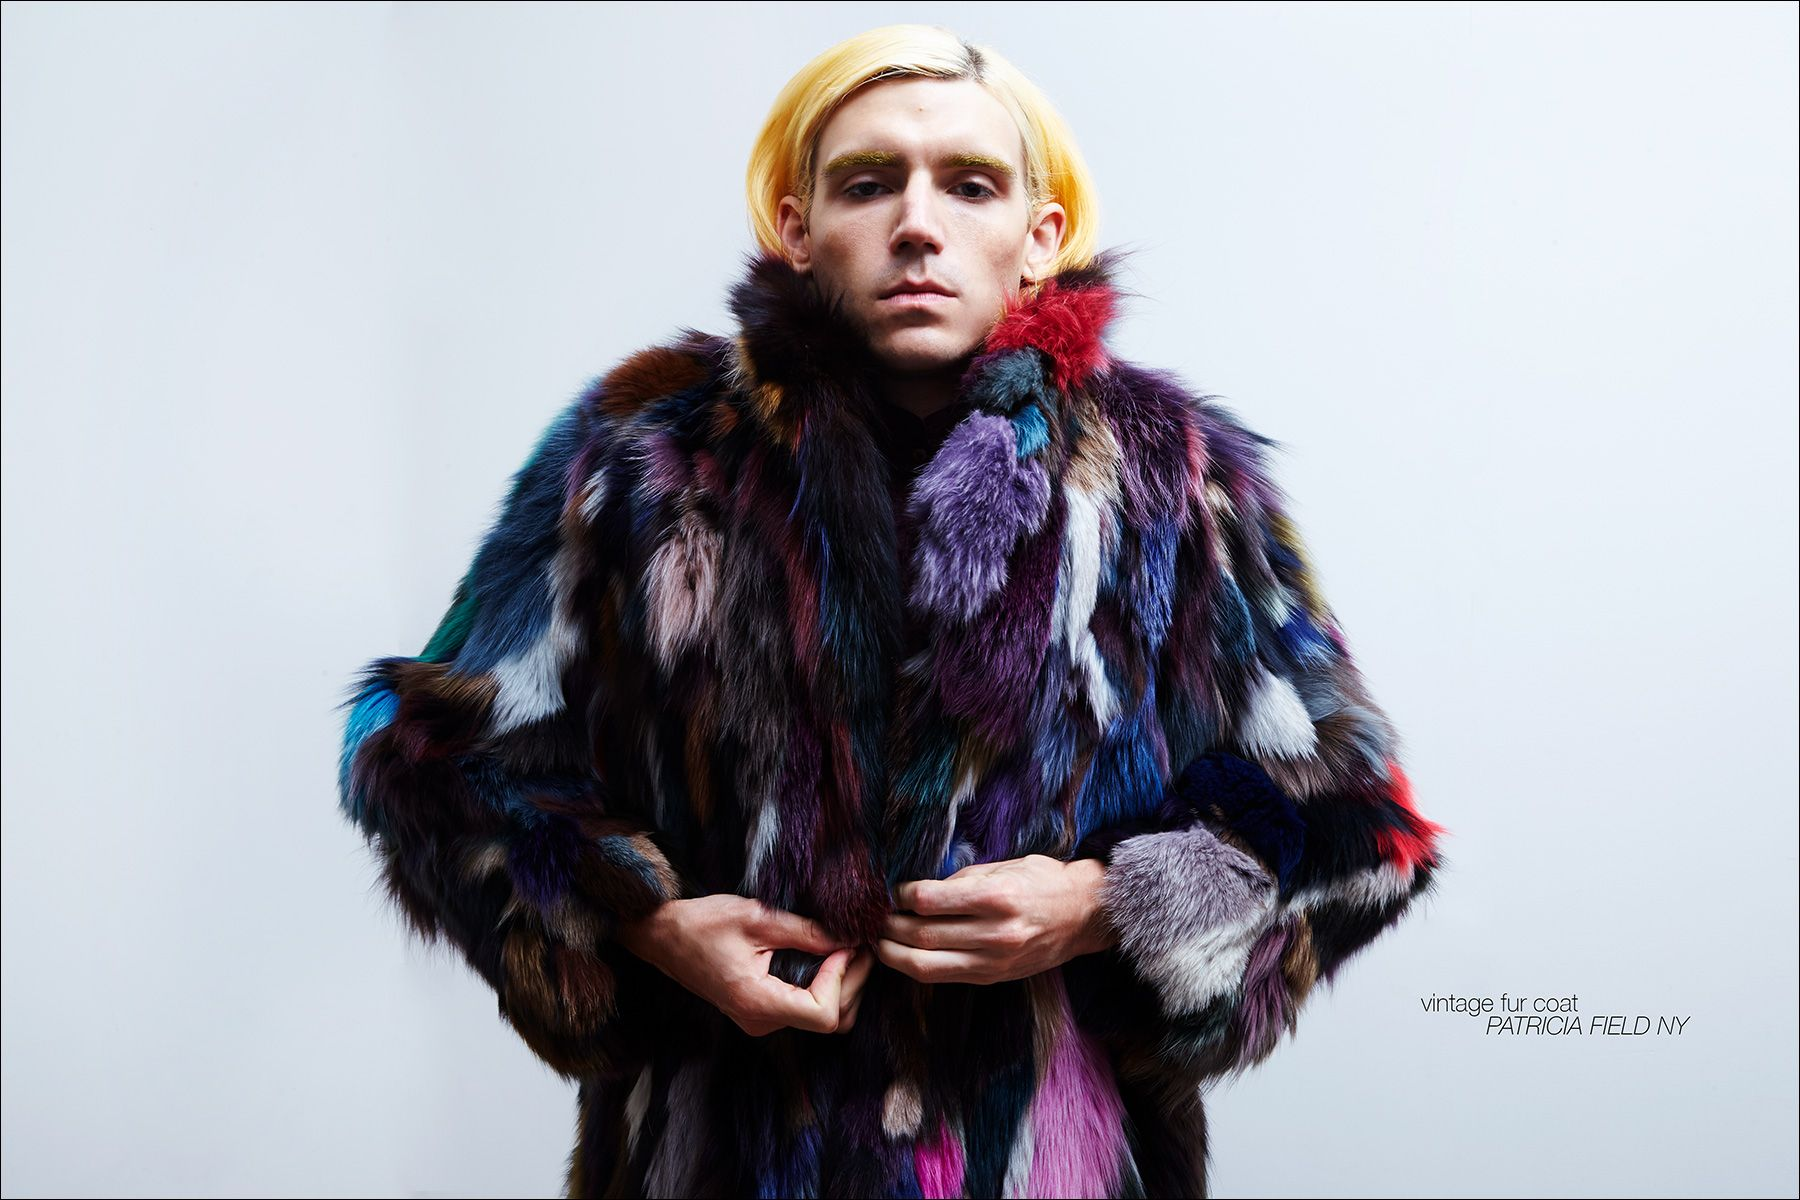 New York City musician Brian Hill photographed in a vintage fur coat. Photography by Alexander Thompson for Ponyboy magazine NY.